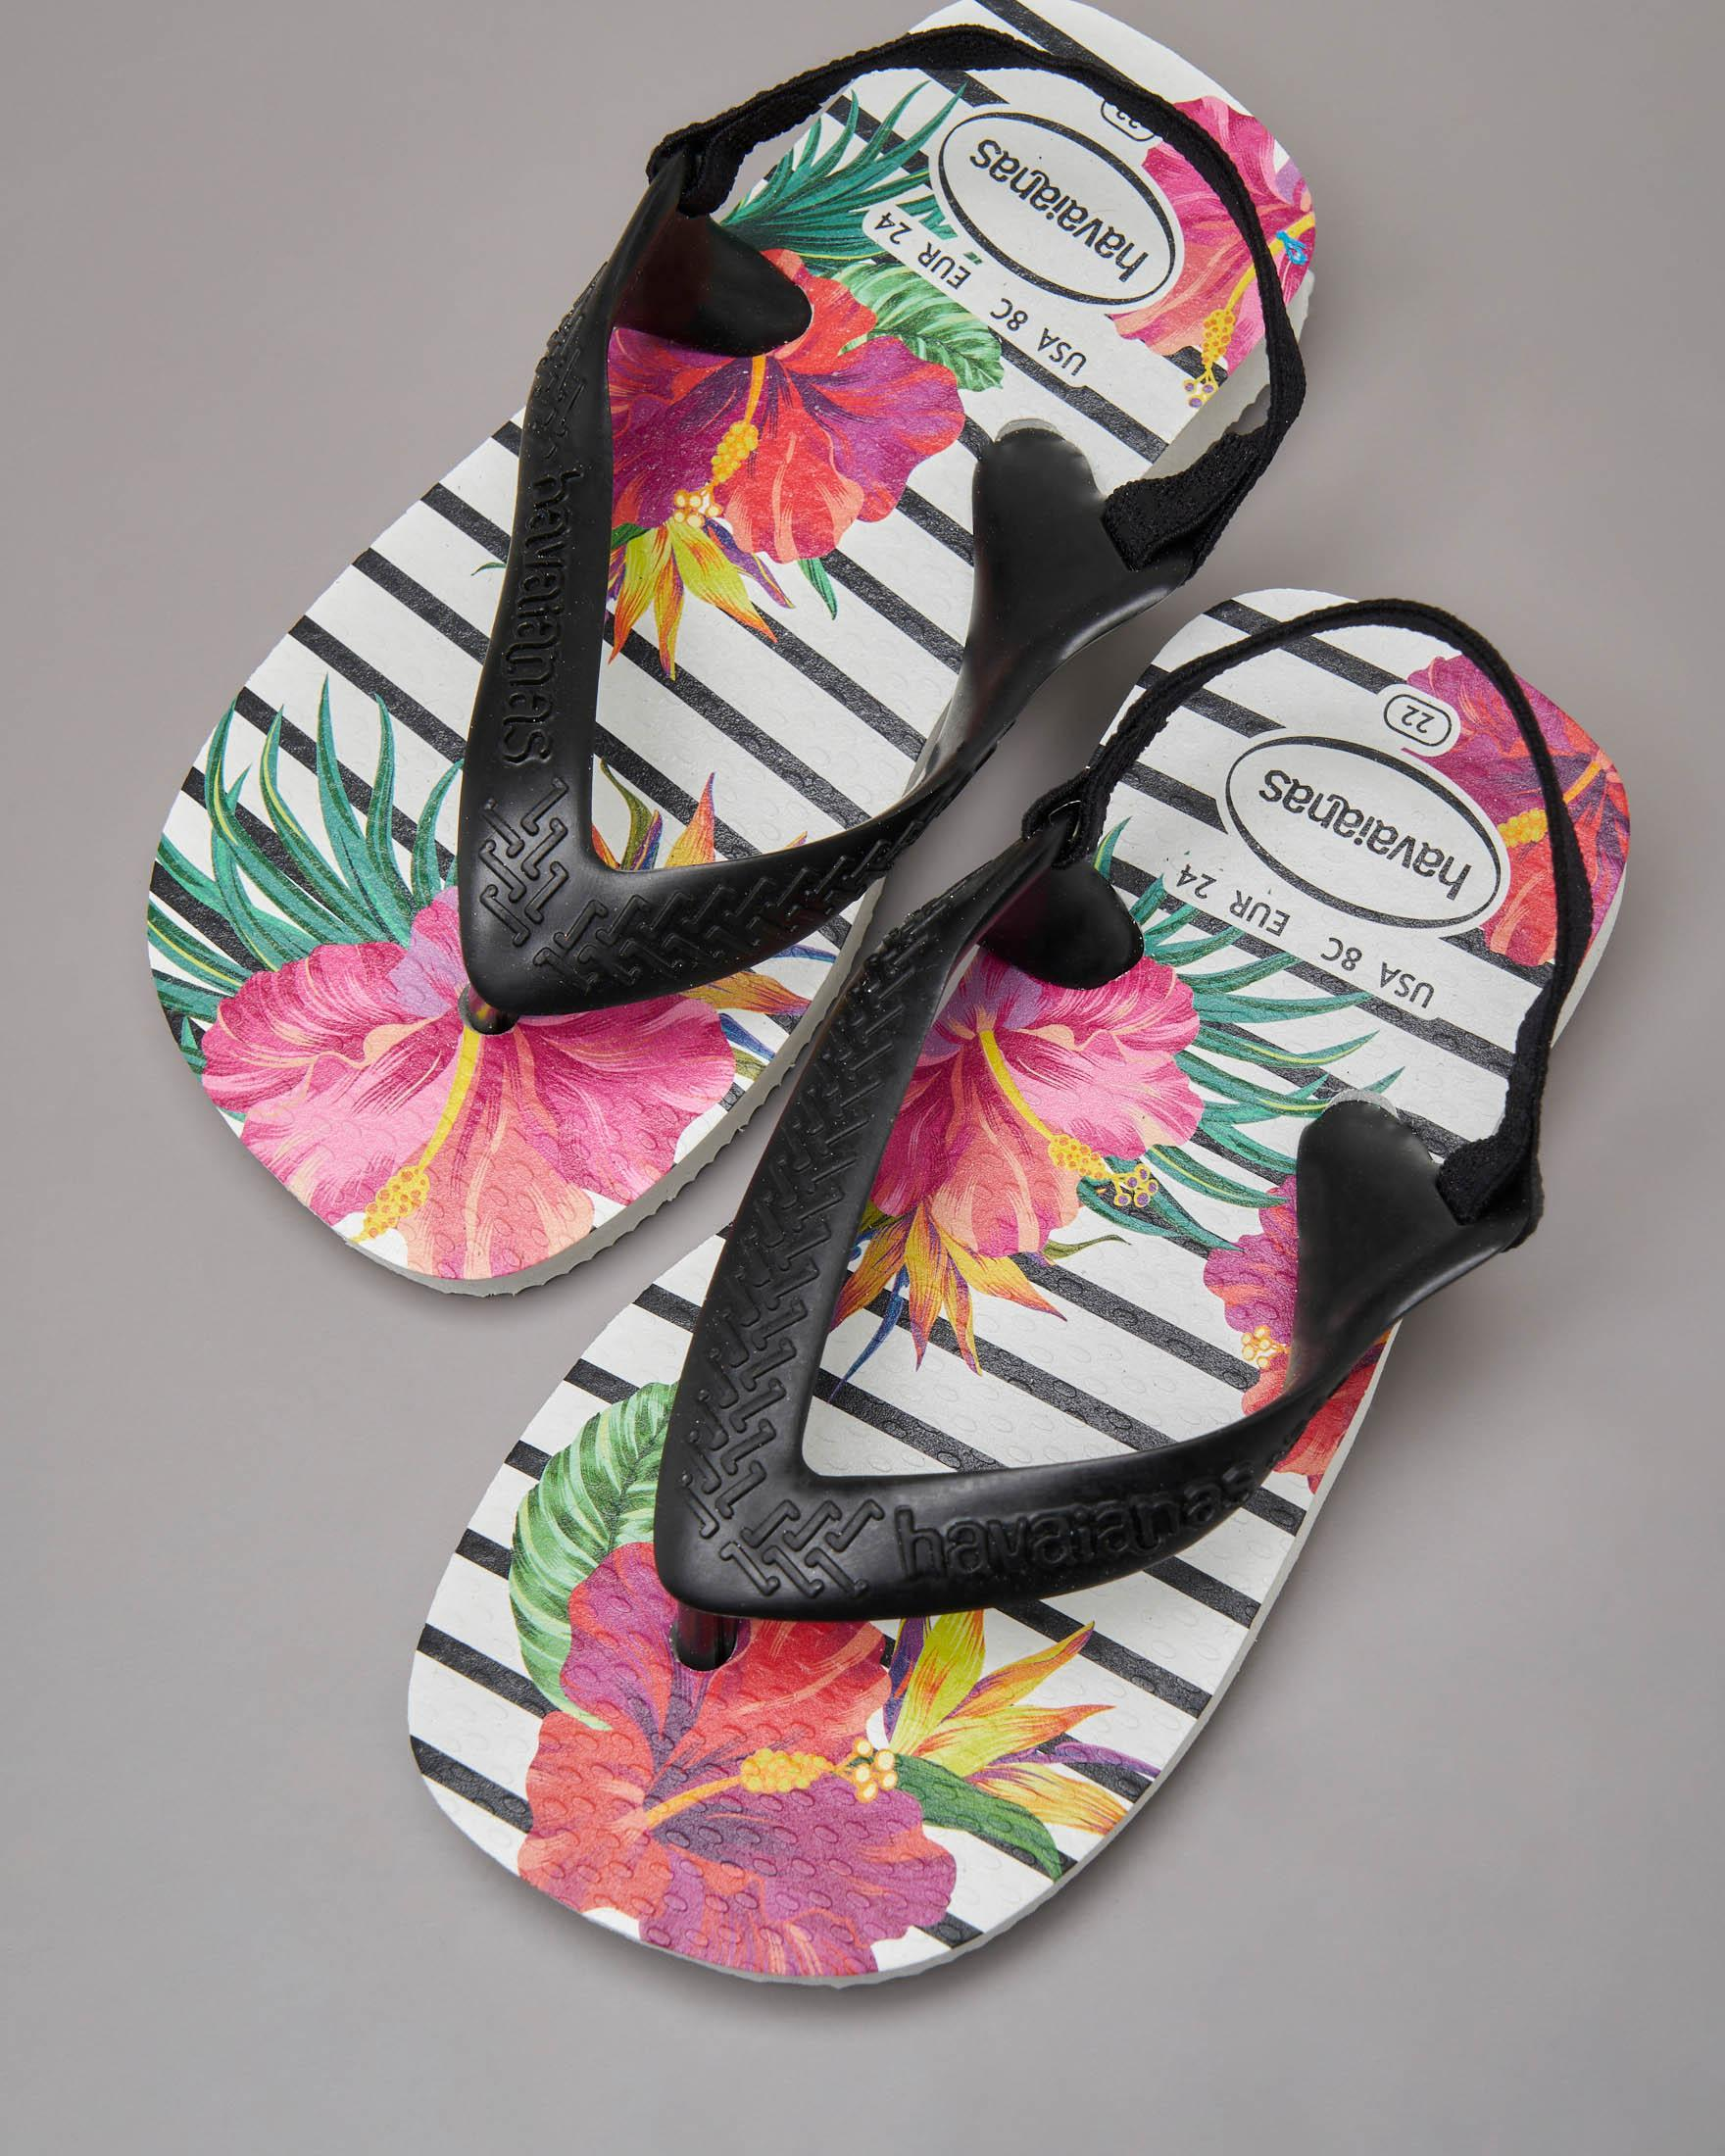 Havaianas bianca a righe nere con stampa floreale